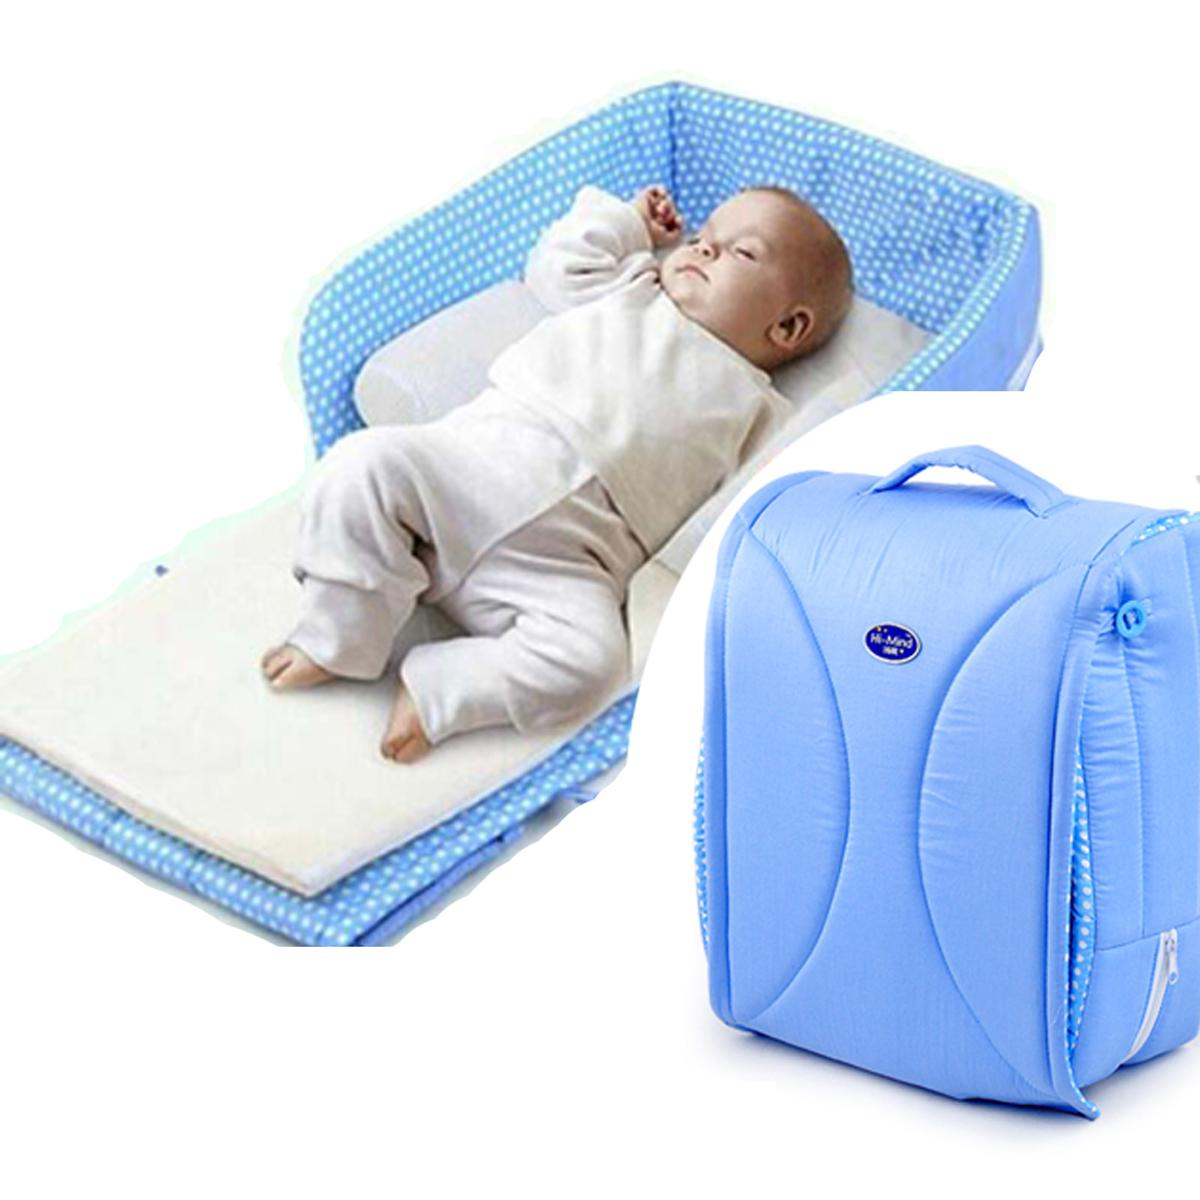 2018 Newborn Baby Sleeping Cribs Portable Infant Bed Cradles Cots Sleeper  Crib From Rhish2000, $52.26 | Dhgate.Com